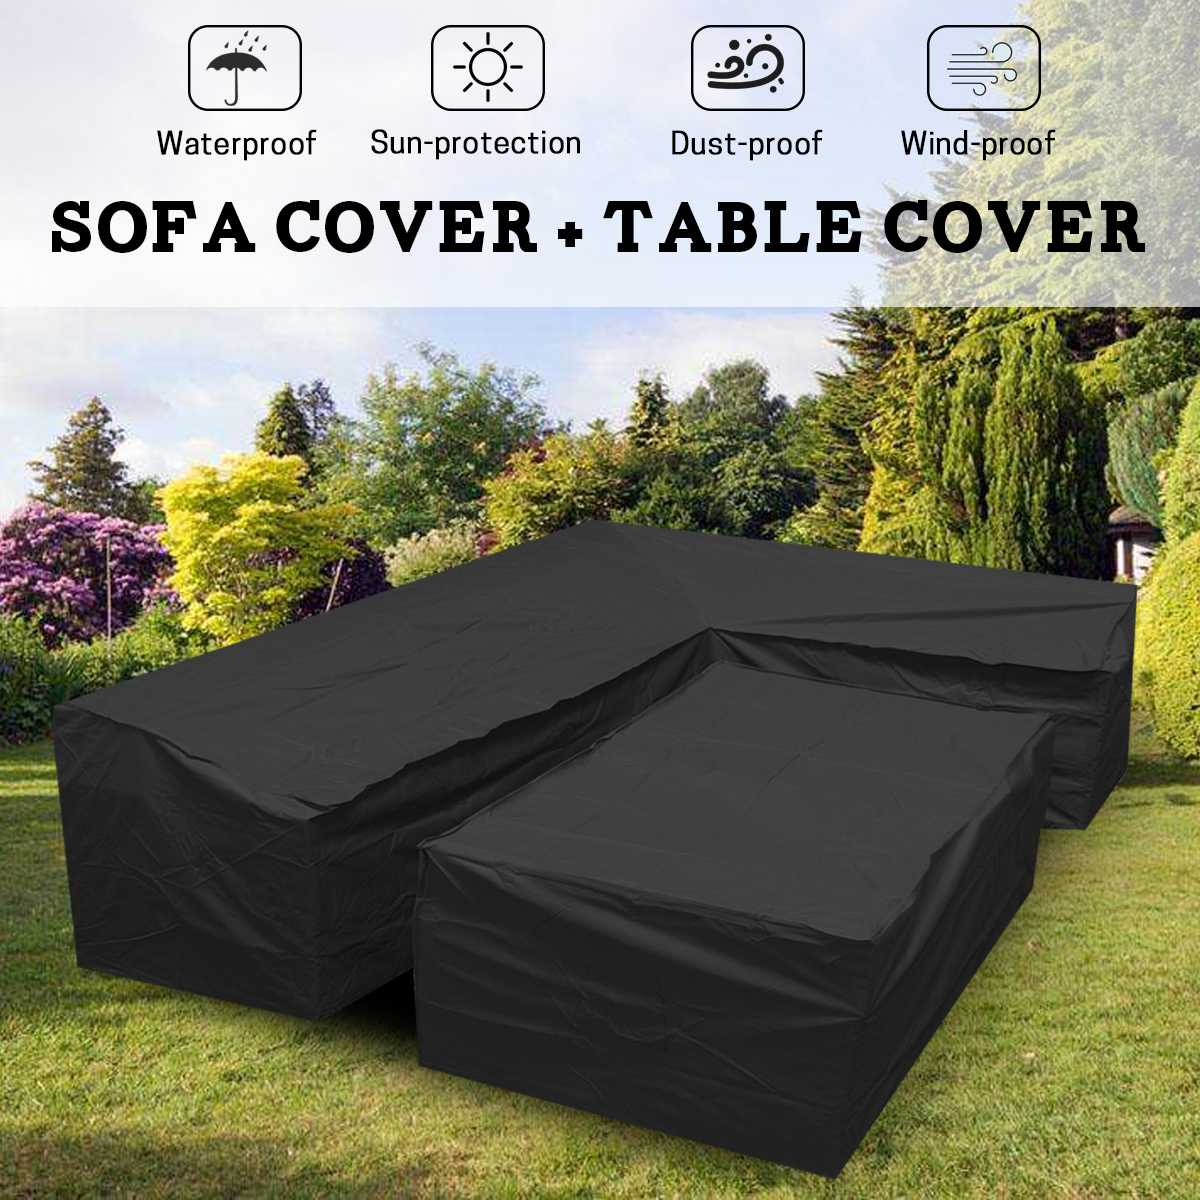 Astounding Us 29 59 31 Off L Shape Dustproof Furniture Cover Waterproof Outdoor Sectional Rain Dust Cover Wicker Corner Sofa Couch Covers All Purpose Cover In Theyellowbook Wood Chair Design Ideas Theyellowbookinfo